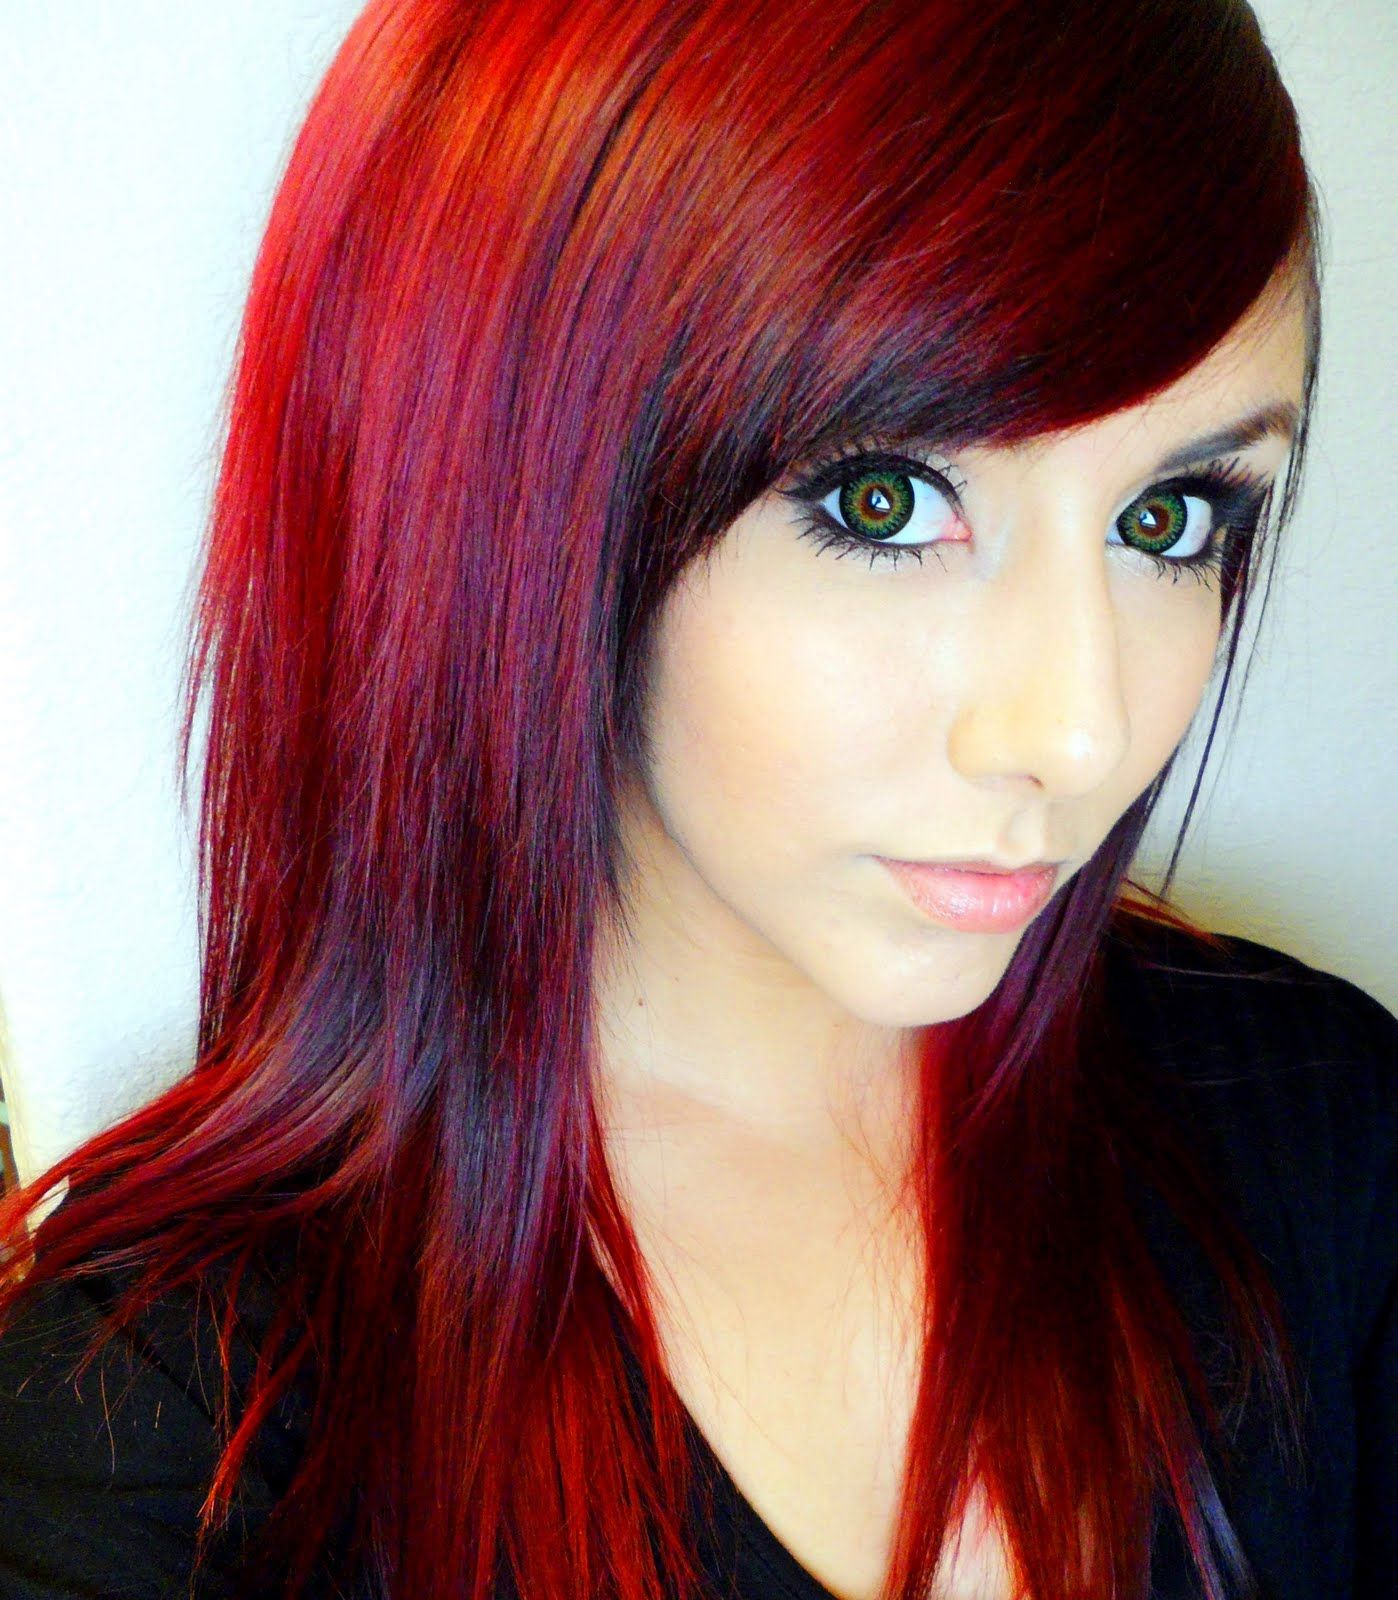 red hair color ideas | Technicolor: My Hair Color - How To ...